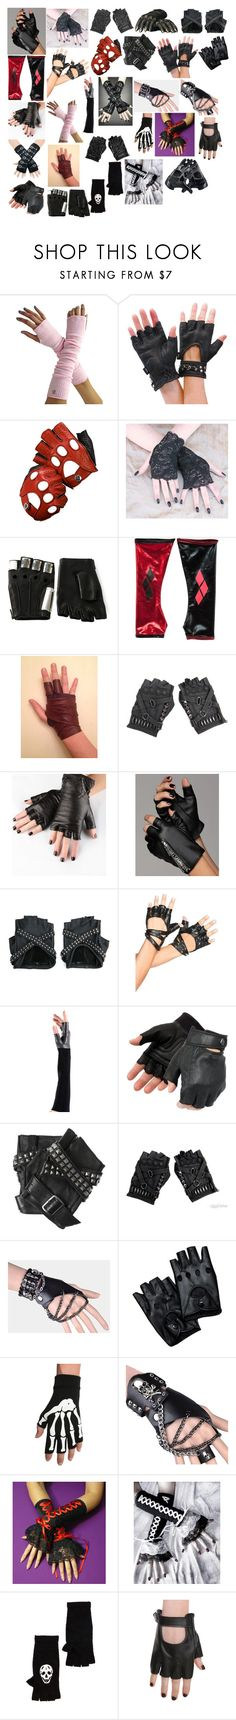 """Gloves 7"" by spellcasters ❤ liked on Polyvore featuring Aspinal of London, Majesty Black, Obesity and Speed, Karl Lagerfeld, Poizen Industries, Leg Avenue, Urstadt.Swan, Hot Topic, 360 Sweater and NIKE"